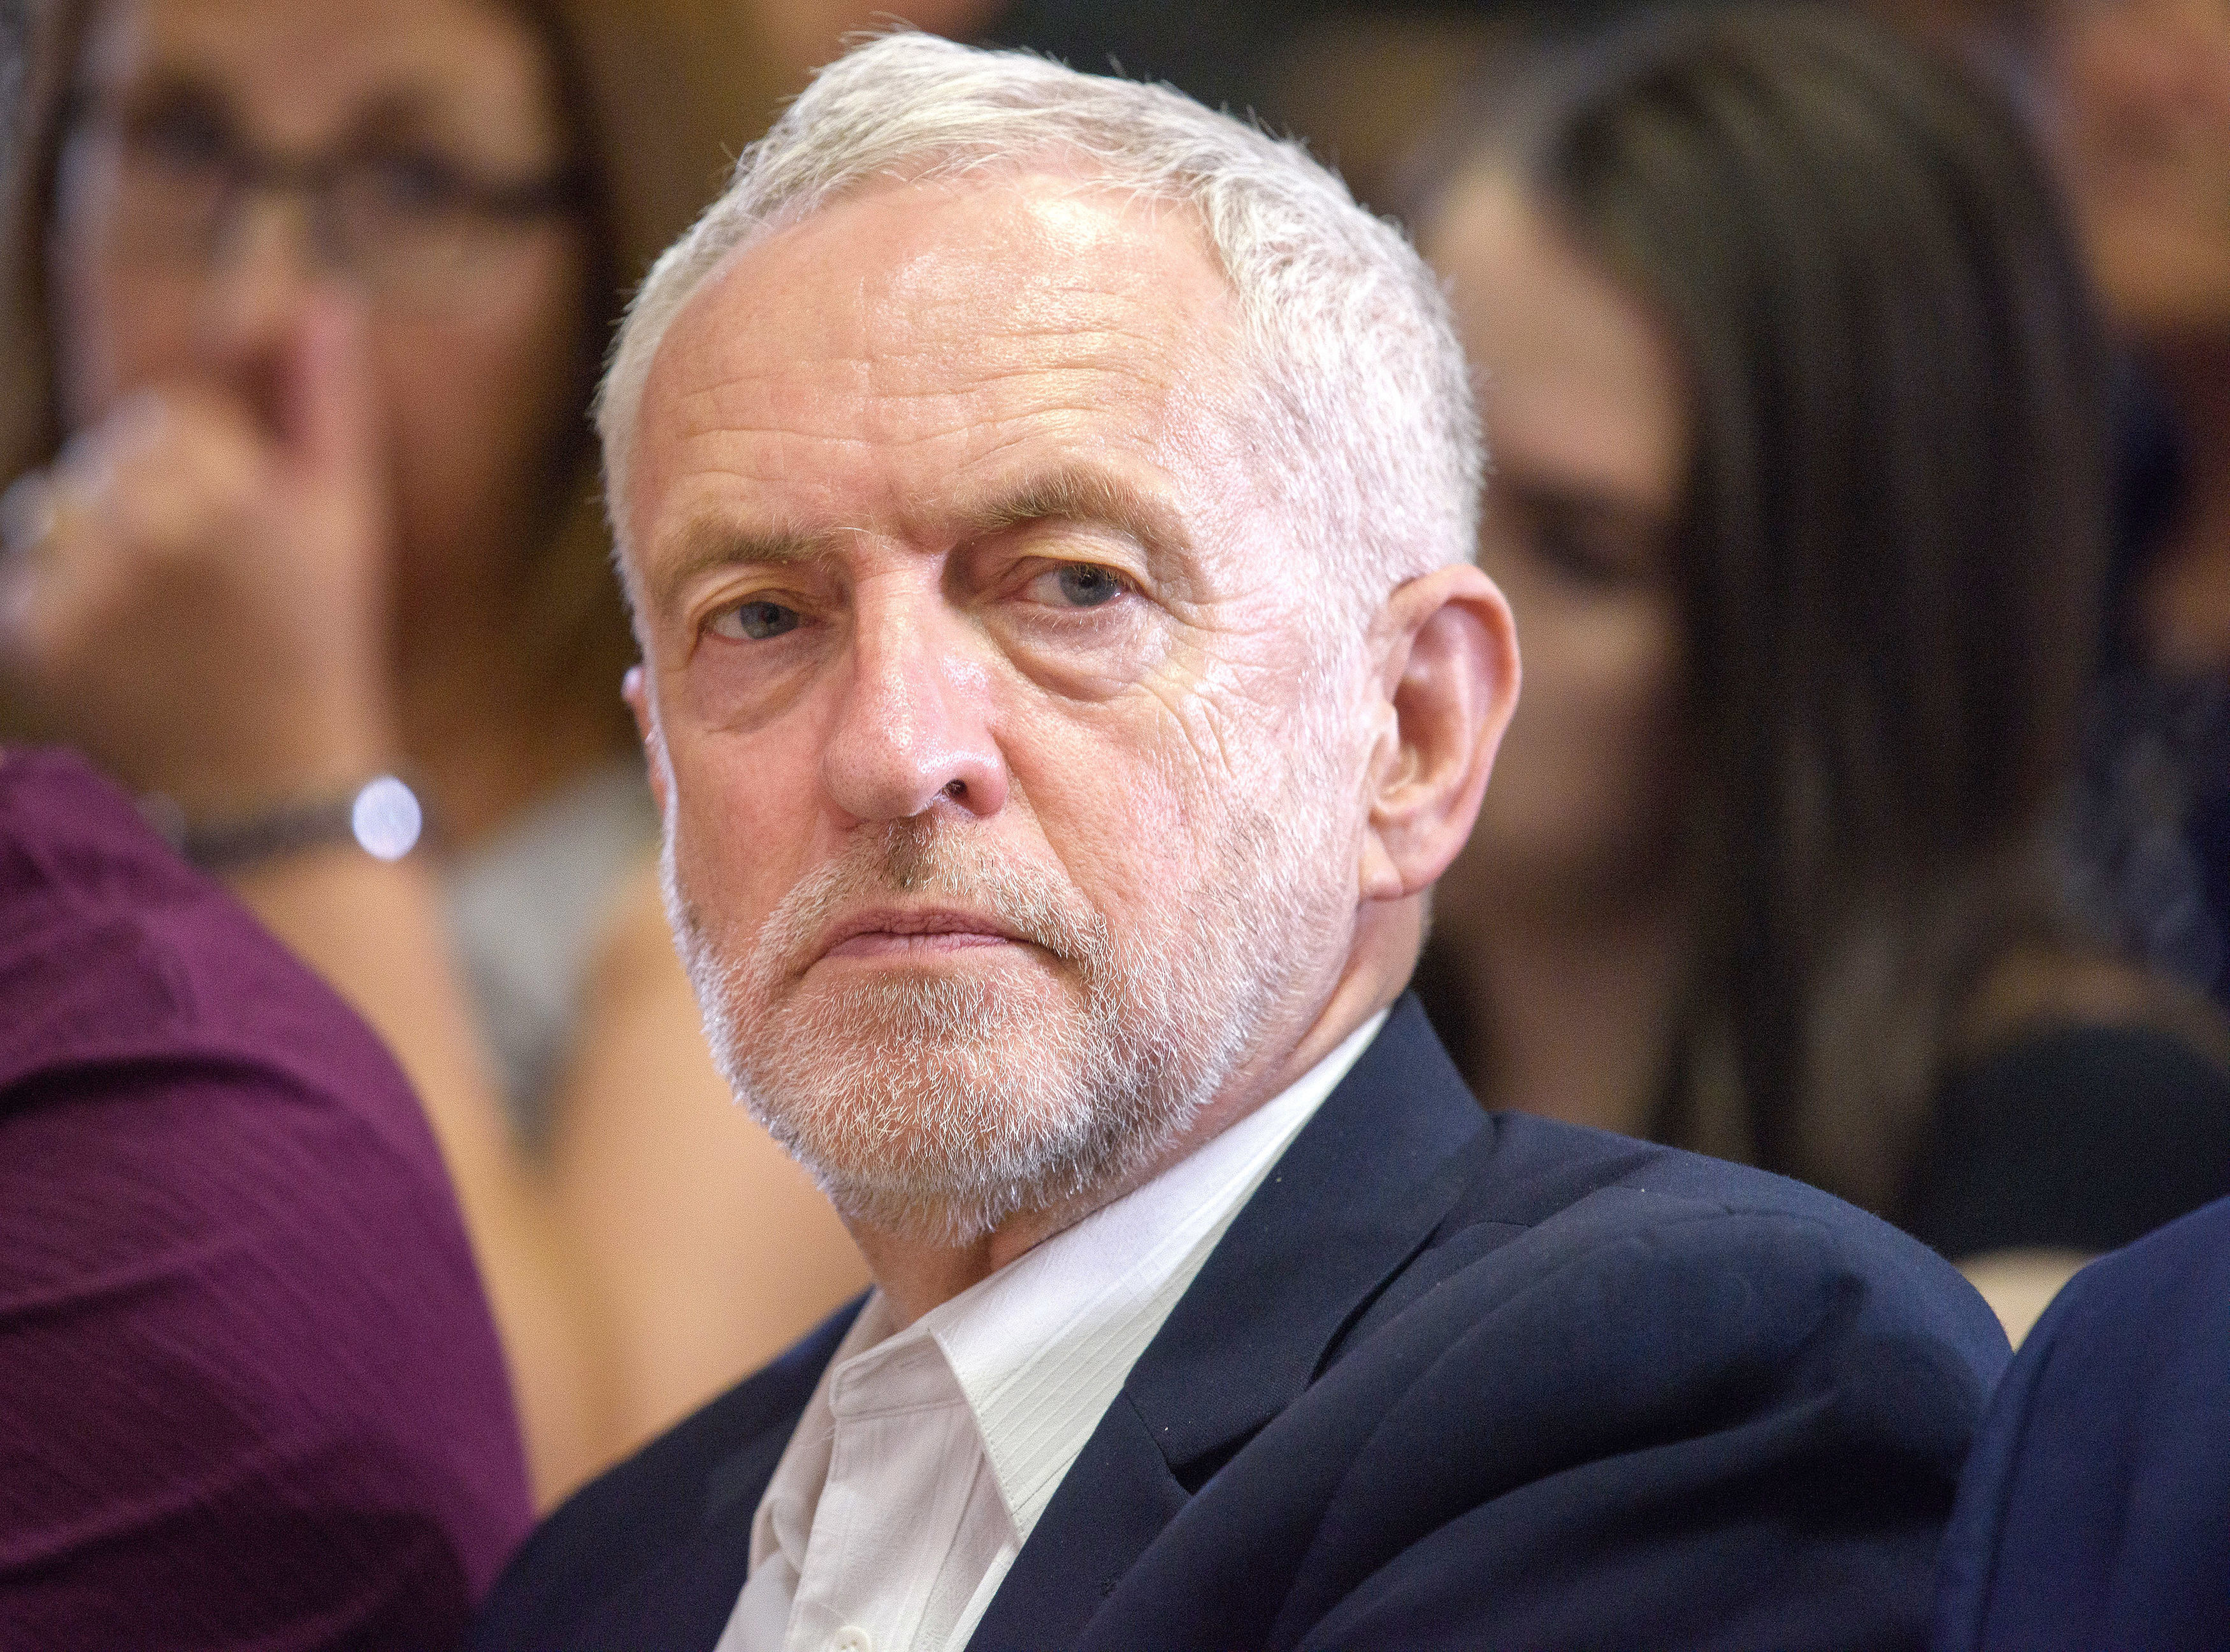 Board leader rejects 'absurd' motion to 'terminate contact' with Corbyn